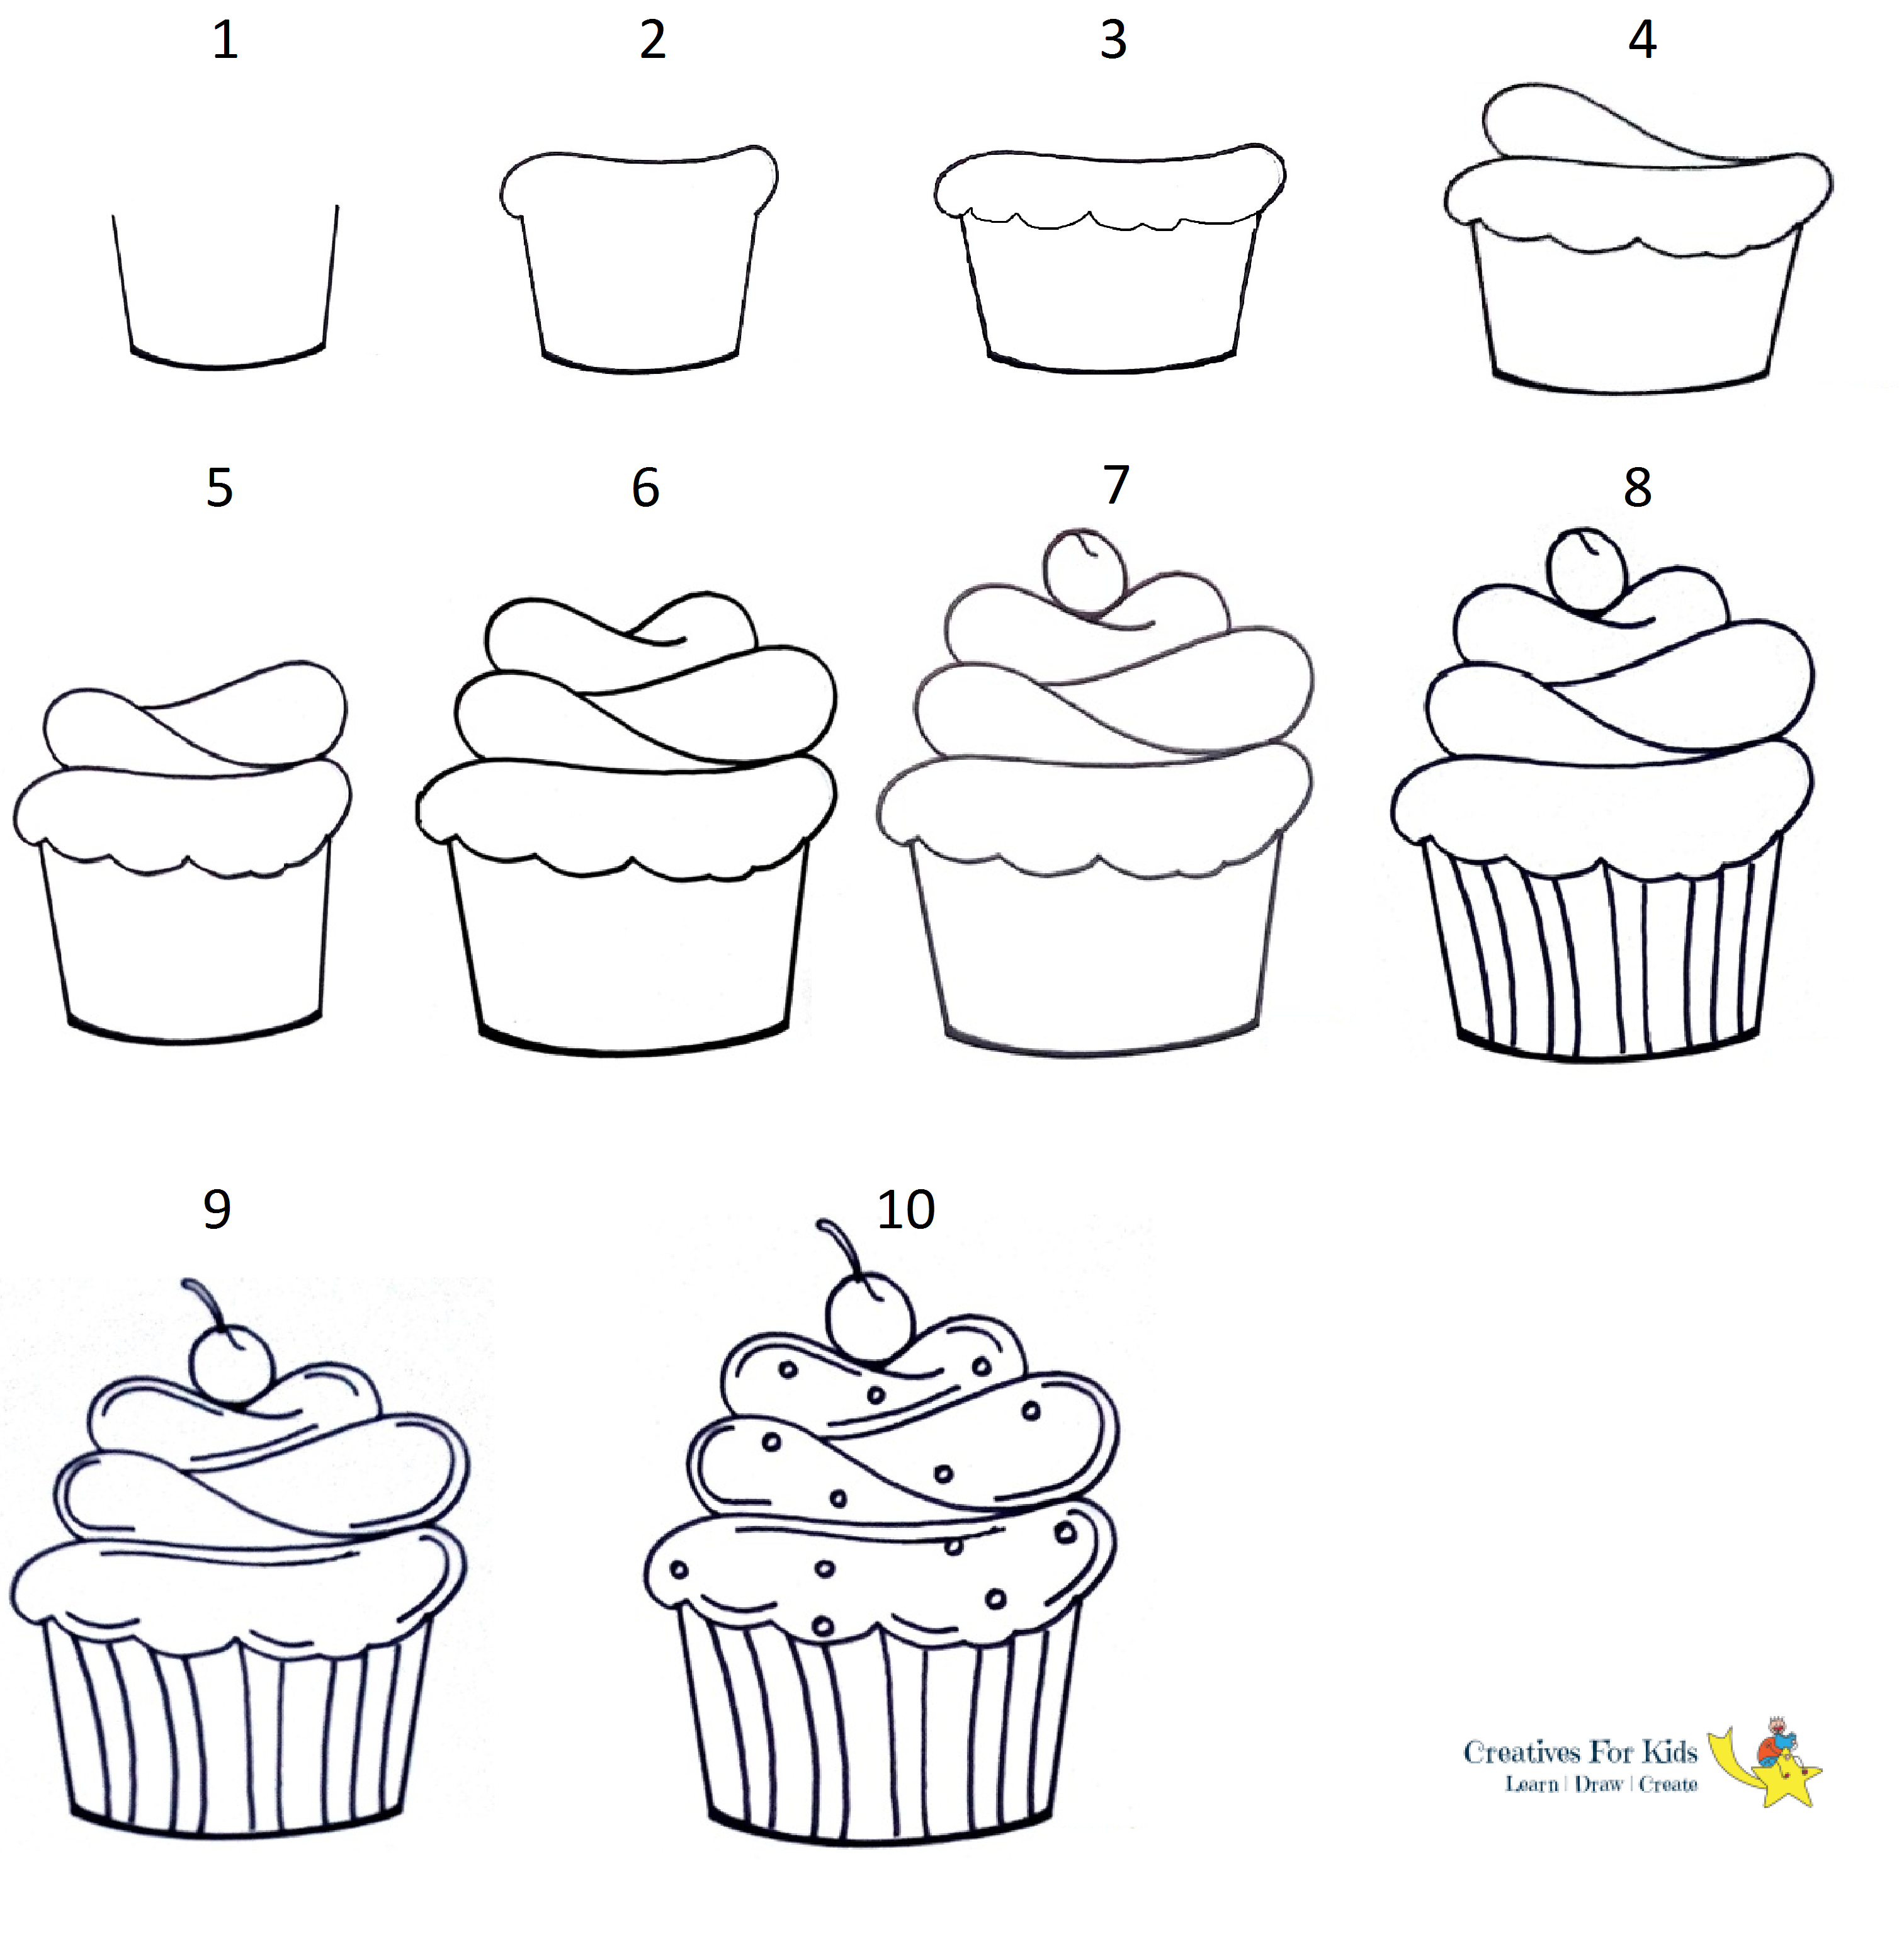 How To Draw A Cupcake Step By Step Tutorial Cupcake Cupcakes Art Drawing Cute Easy Drawings Cupcake Drawing